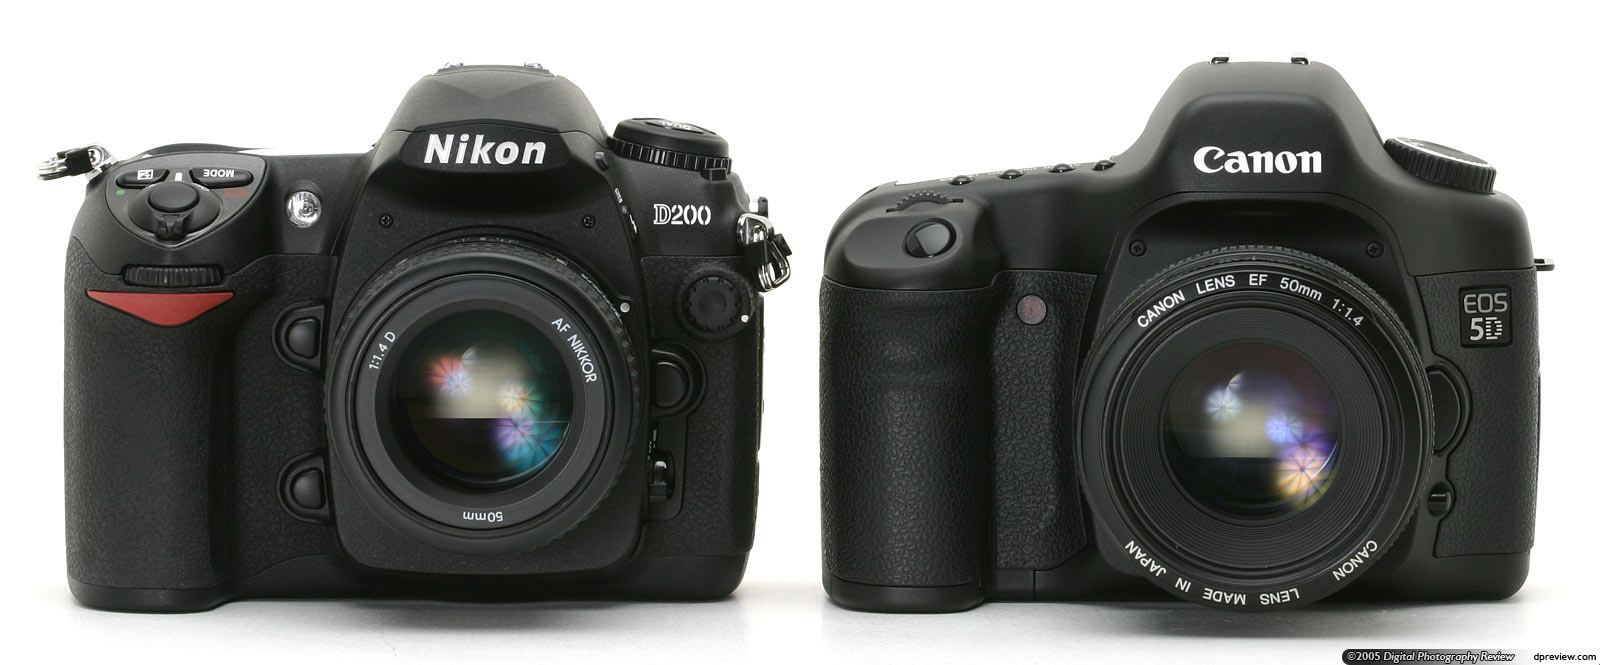 Nikon D200 Review: Digital Photography Review